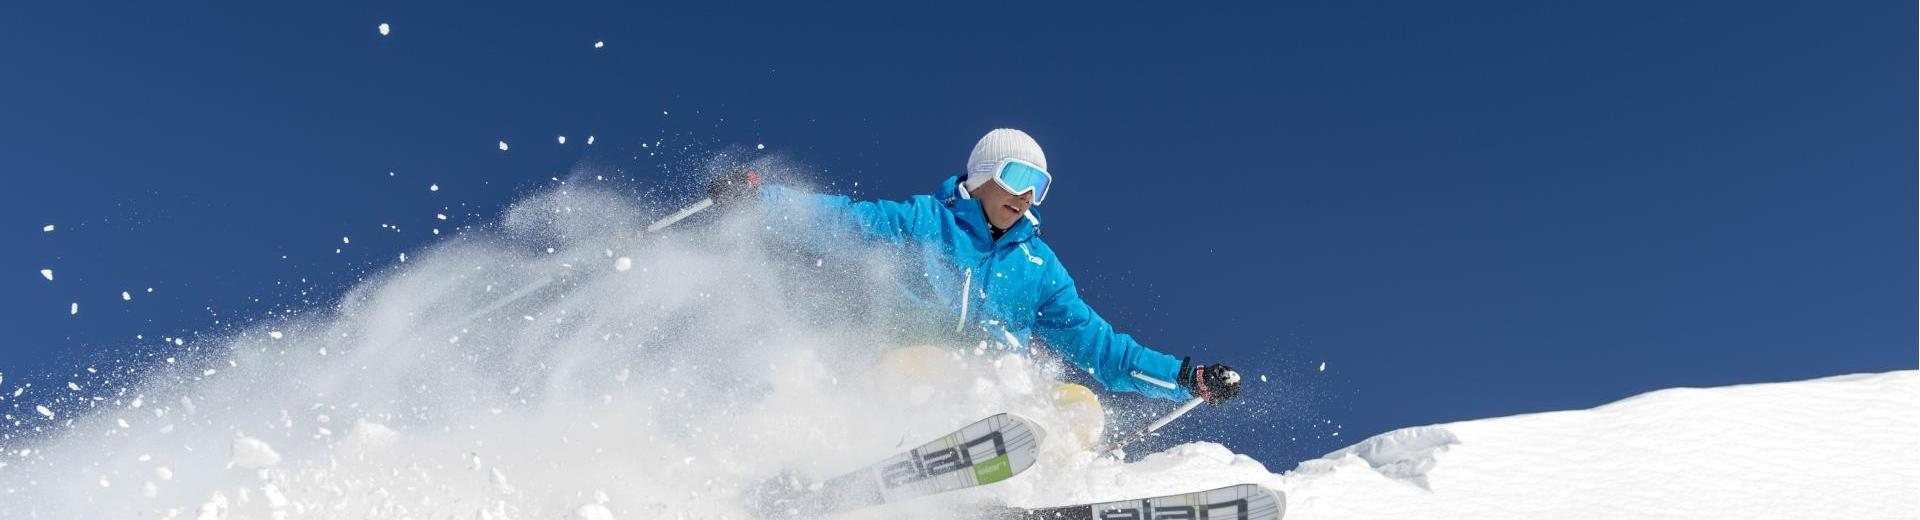 ski-8-seiser-alm-marketing-helmuth-rier